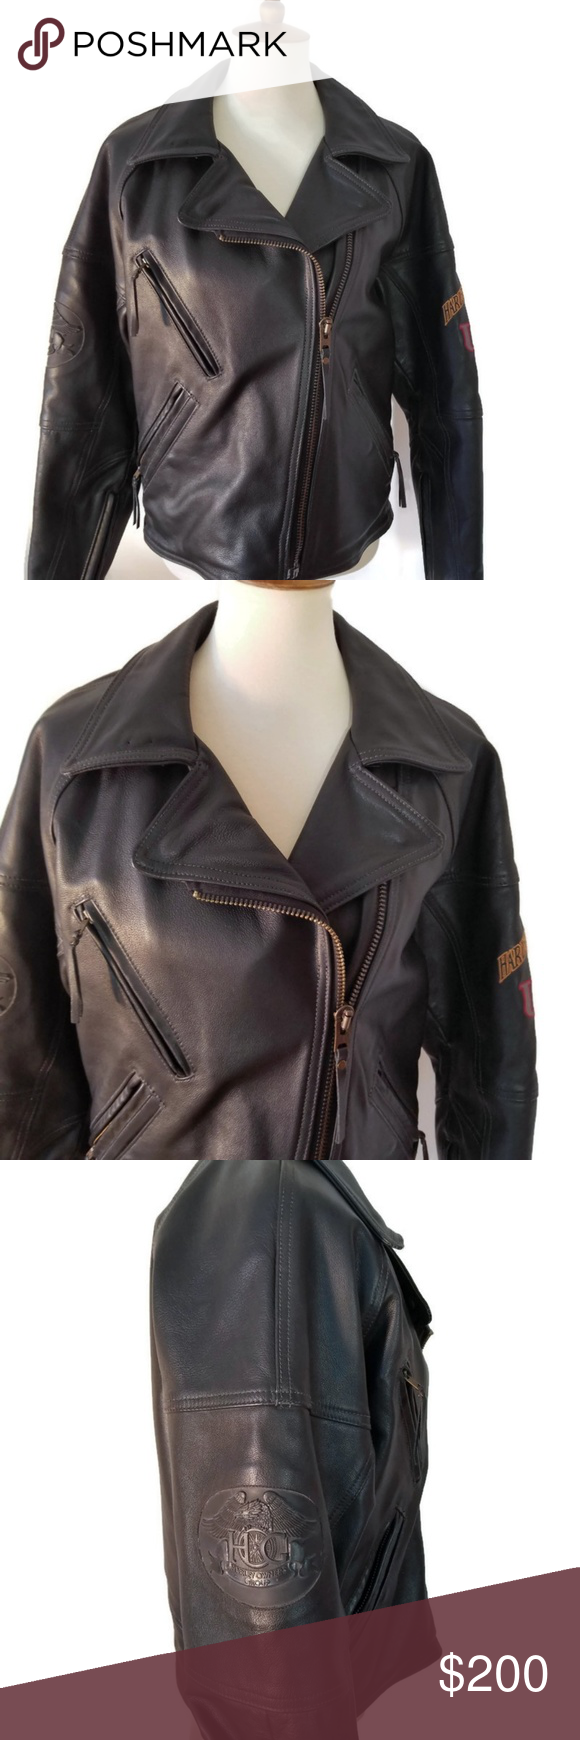 Harley Davidson Small Leather Coat Coats For Women Black Leather Coat Leather Coat [ 1740 x 580 Pixel ]